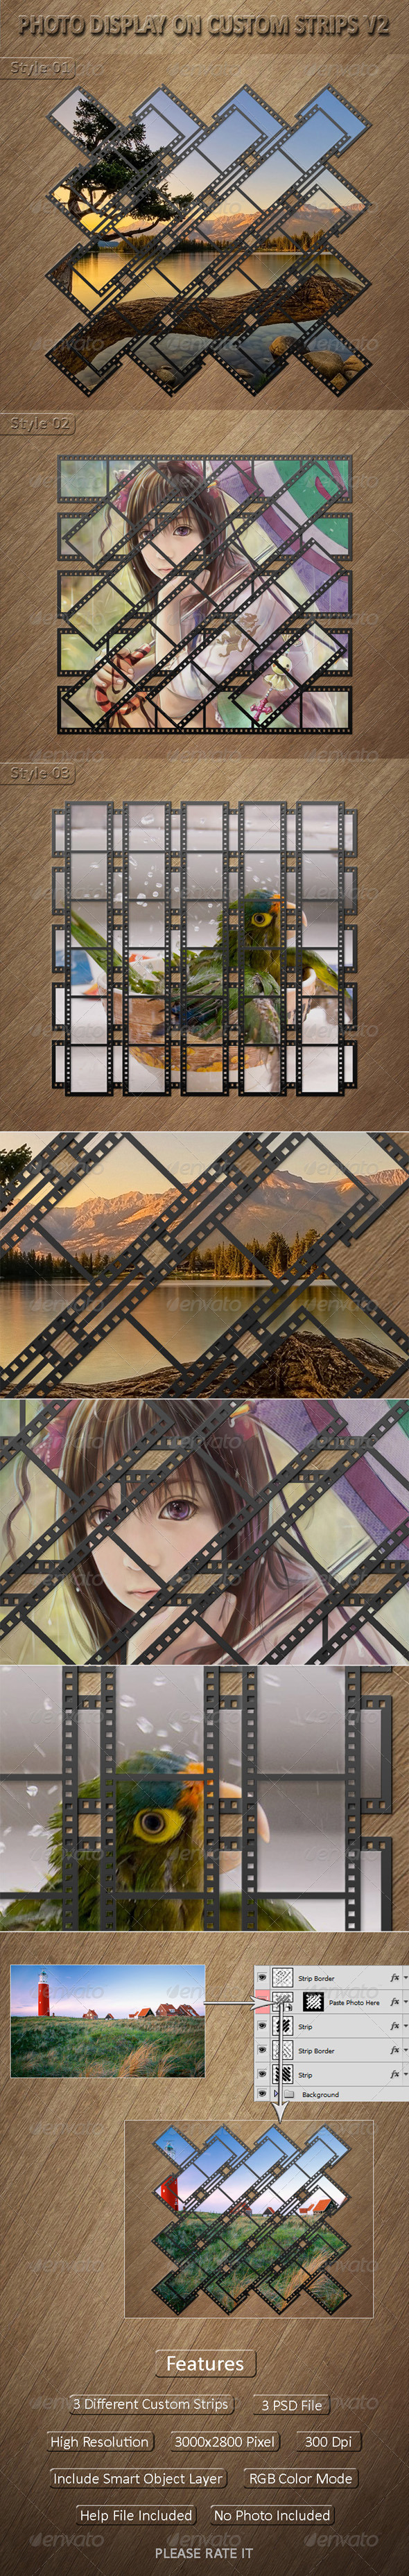 Photo Display on Custom Strips V2 - Photo Templates Graphics